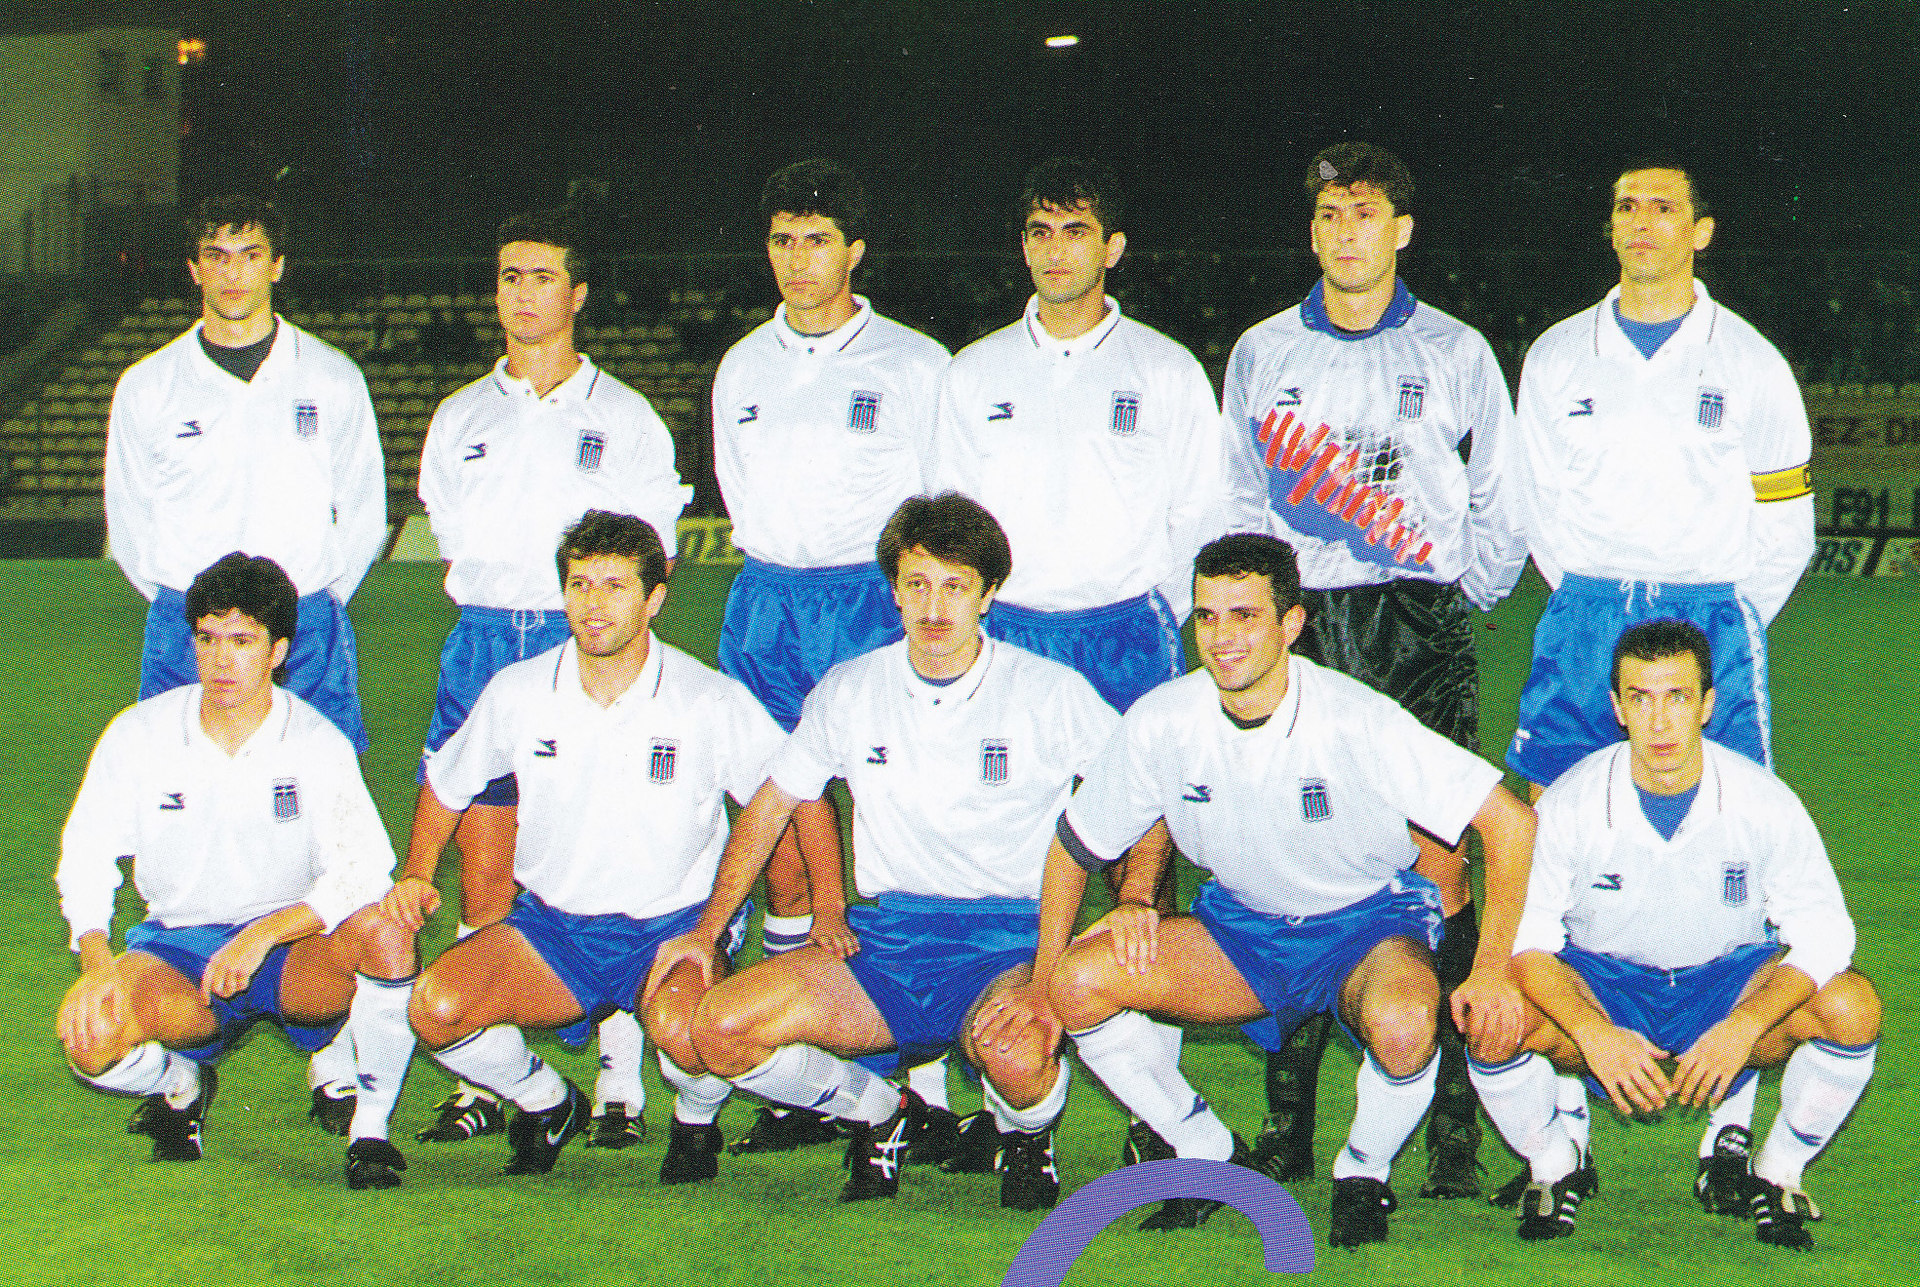 Greece-1993-diadora-away-kit-white-blue-white-line-up.jpg